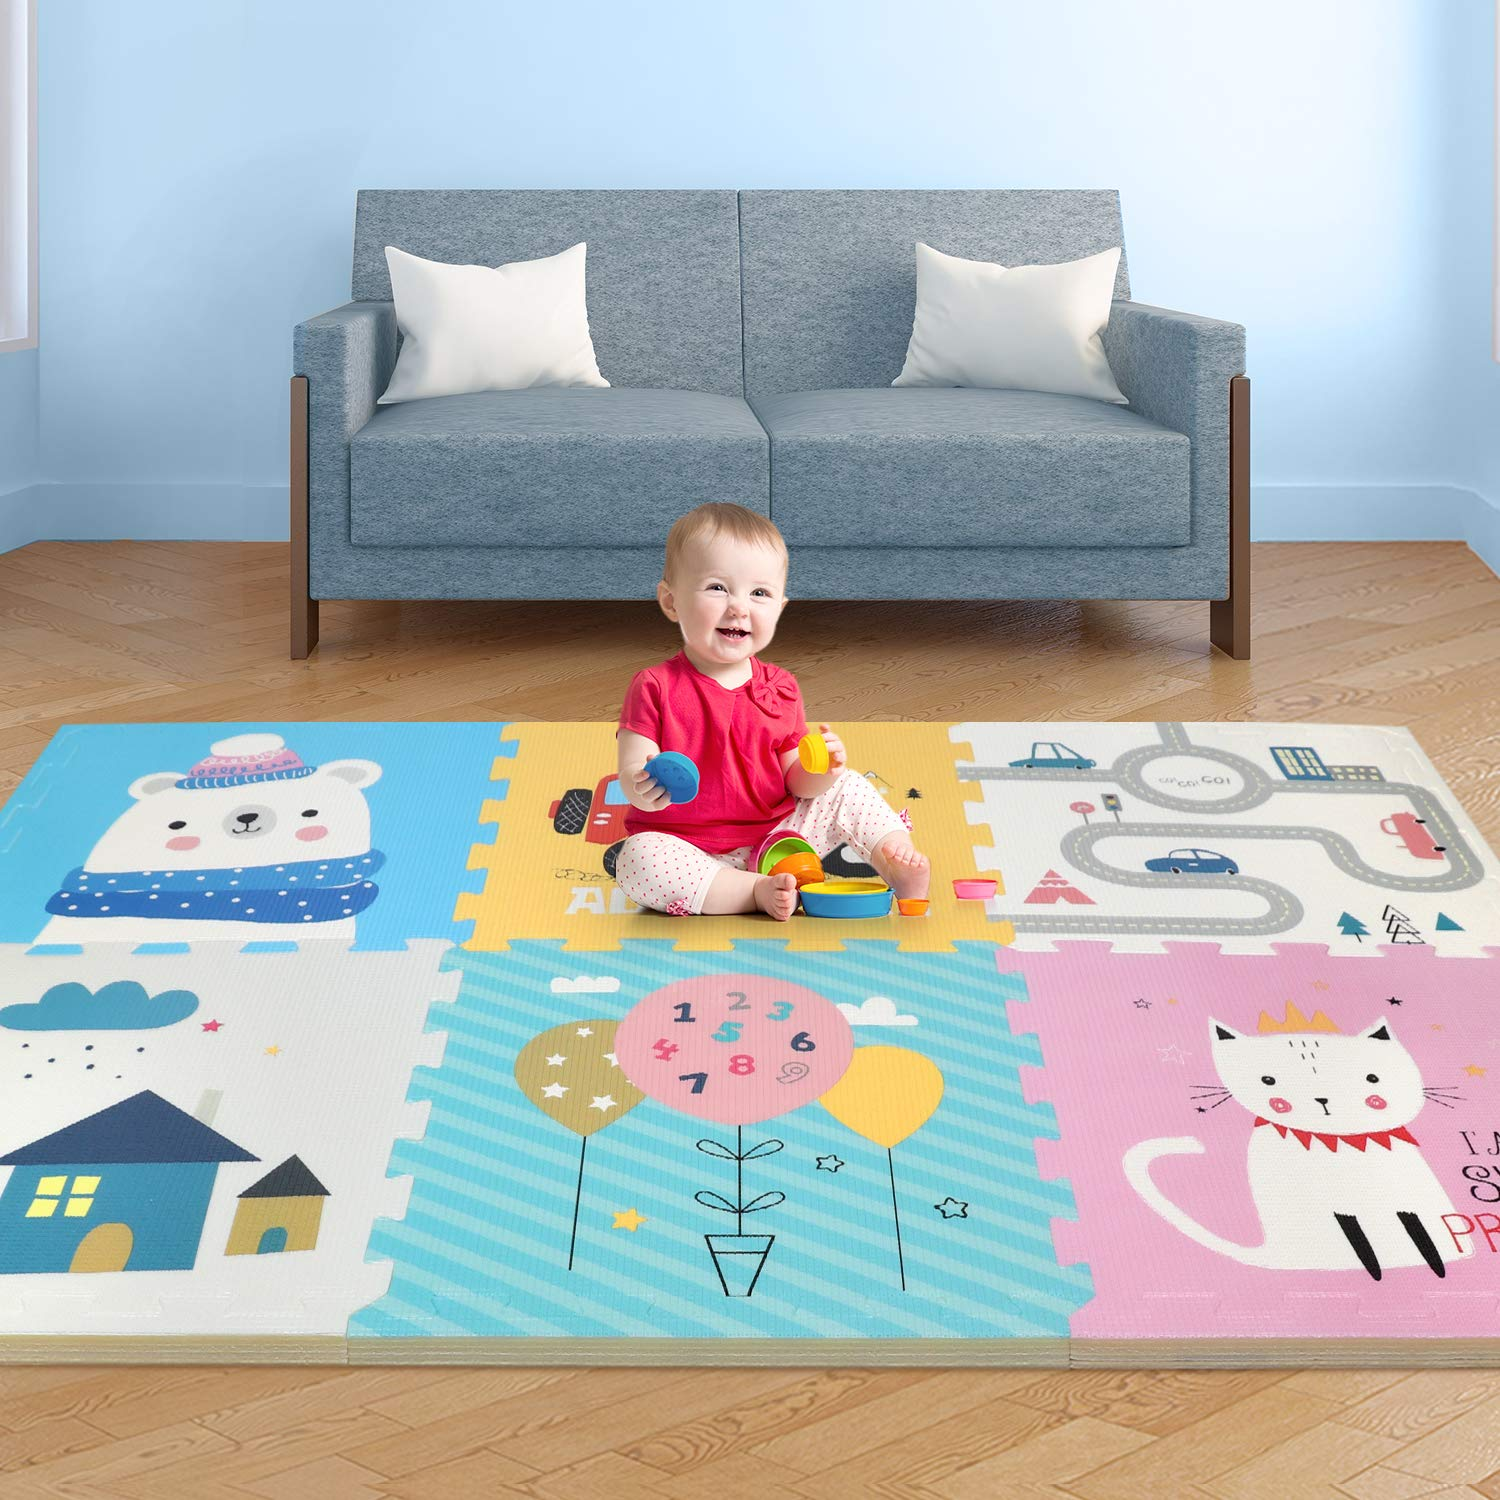 Play Mat, Foldable Baby Crawling Mat Non-Toxic Kids Puzzle Exercise Playmat Large Waterproof Foam Floor Play Mat with Soft Interlocking Floor Tiles Reversible Playmat for Toddler Infant - 67x45x0.79IN